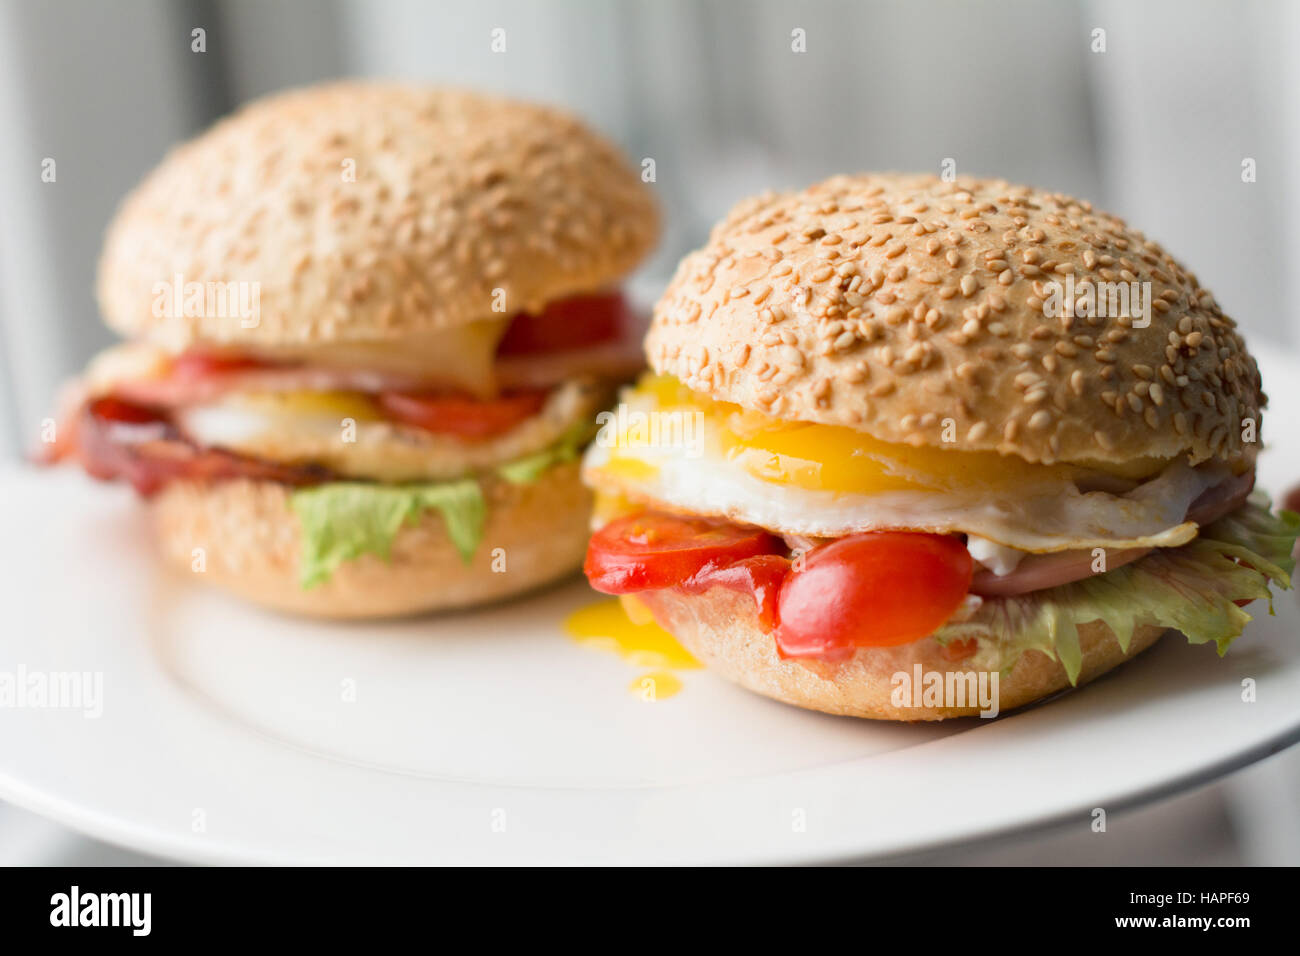 Bacon, egg and tomato sandwiches on white plate, close up view - Stock Image